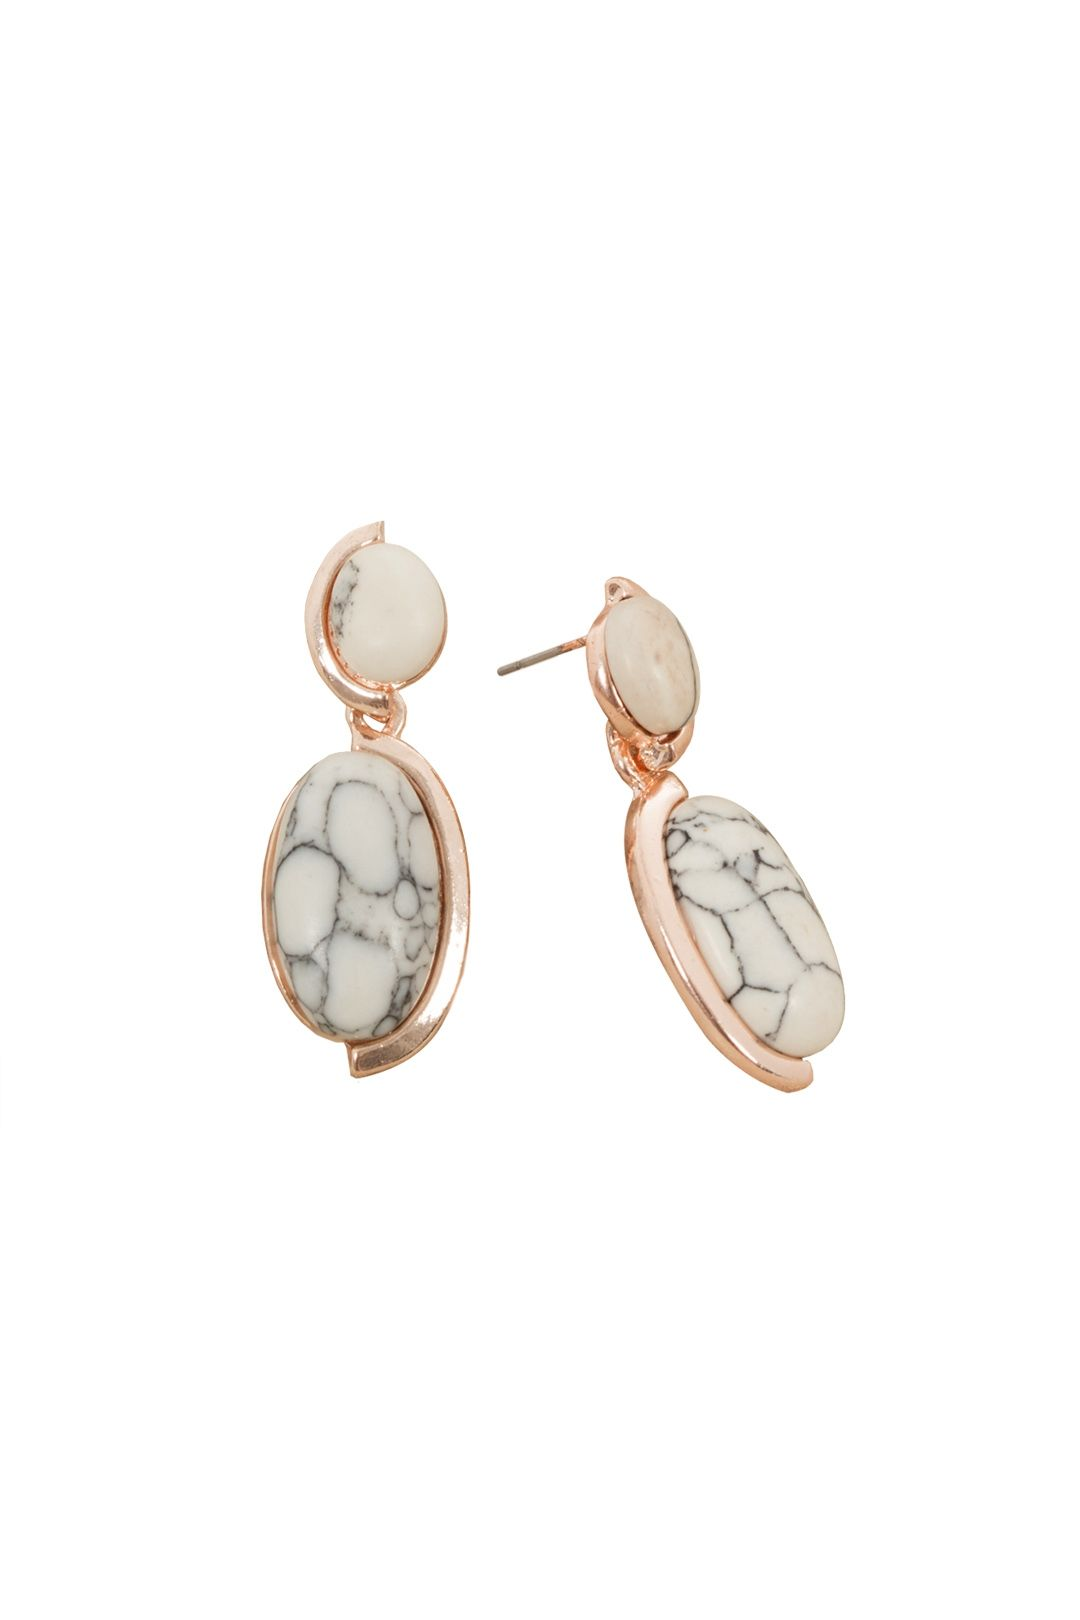 Adorne - Double Almond Drop Stone Stud Earring - Marble - Front